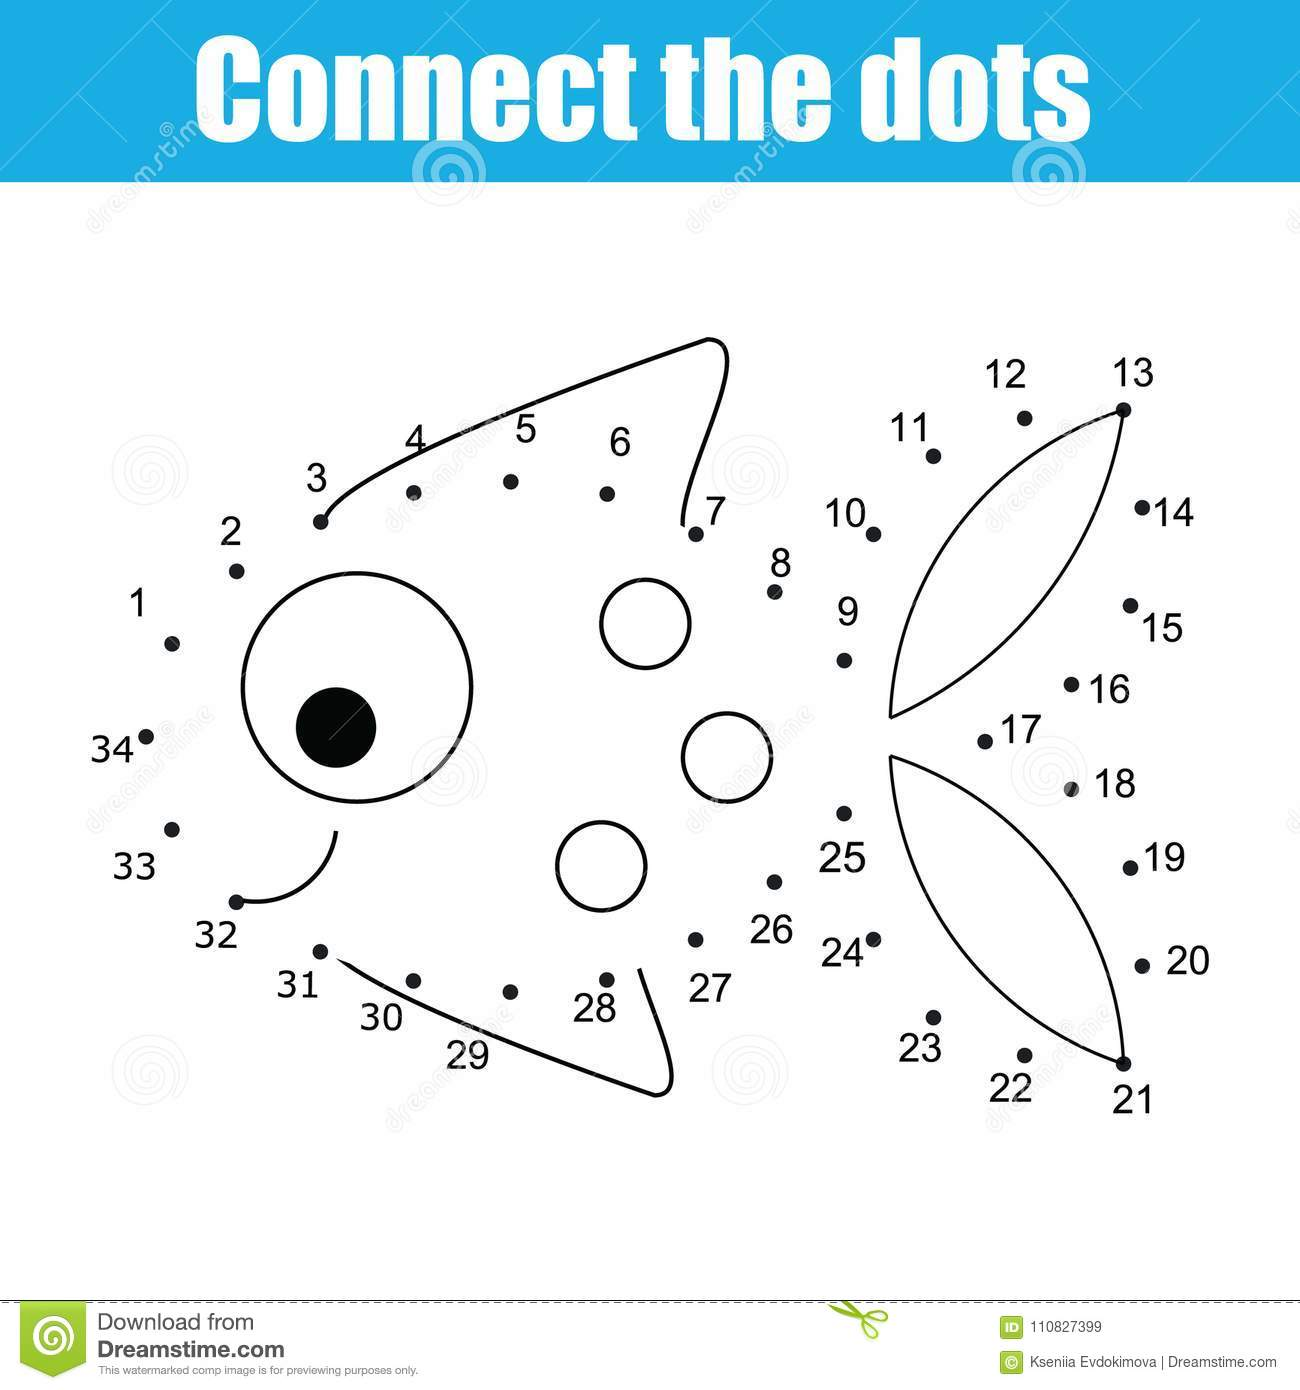 picture regarding Connect the Dots Game Printable referred to as Communicate The Dots As a result of Figures Youngsters Insightful Video game